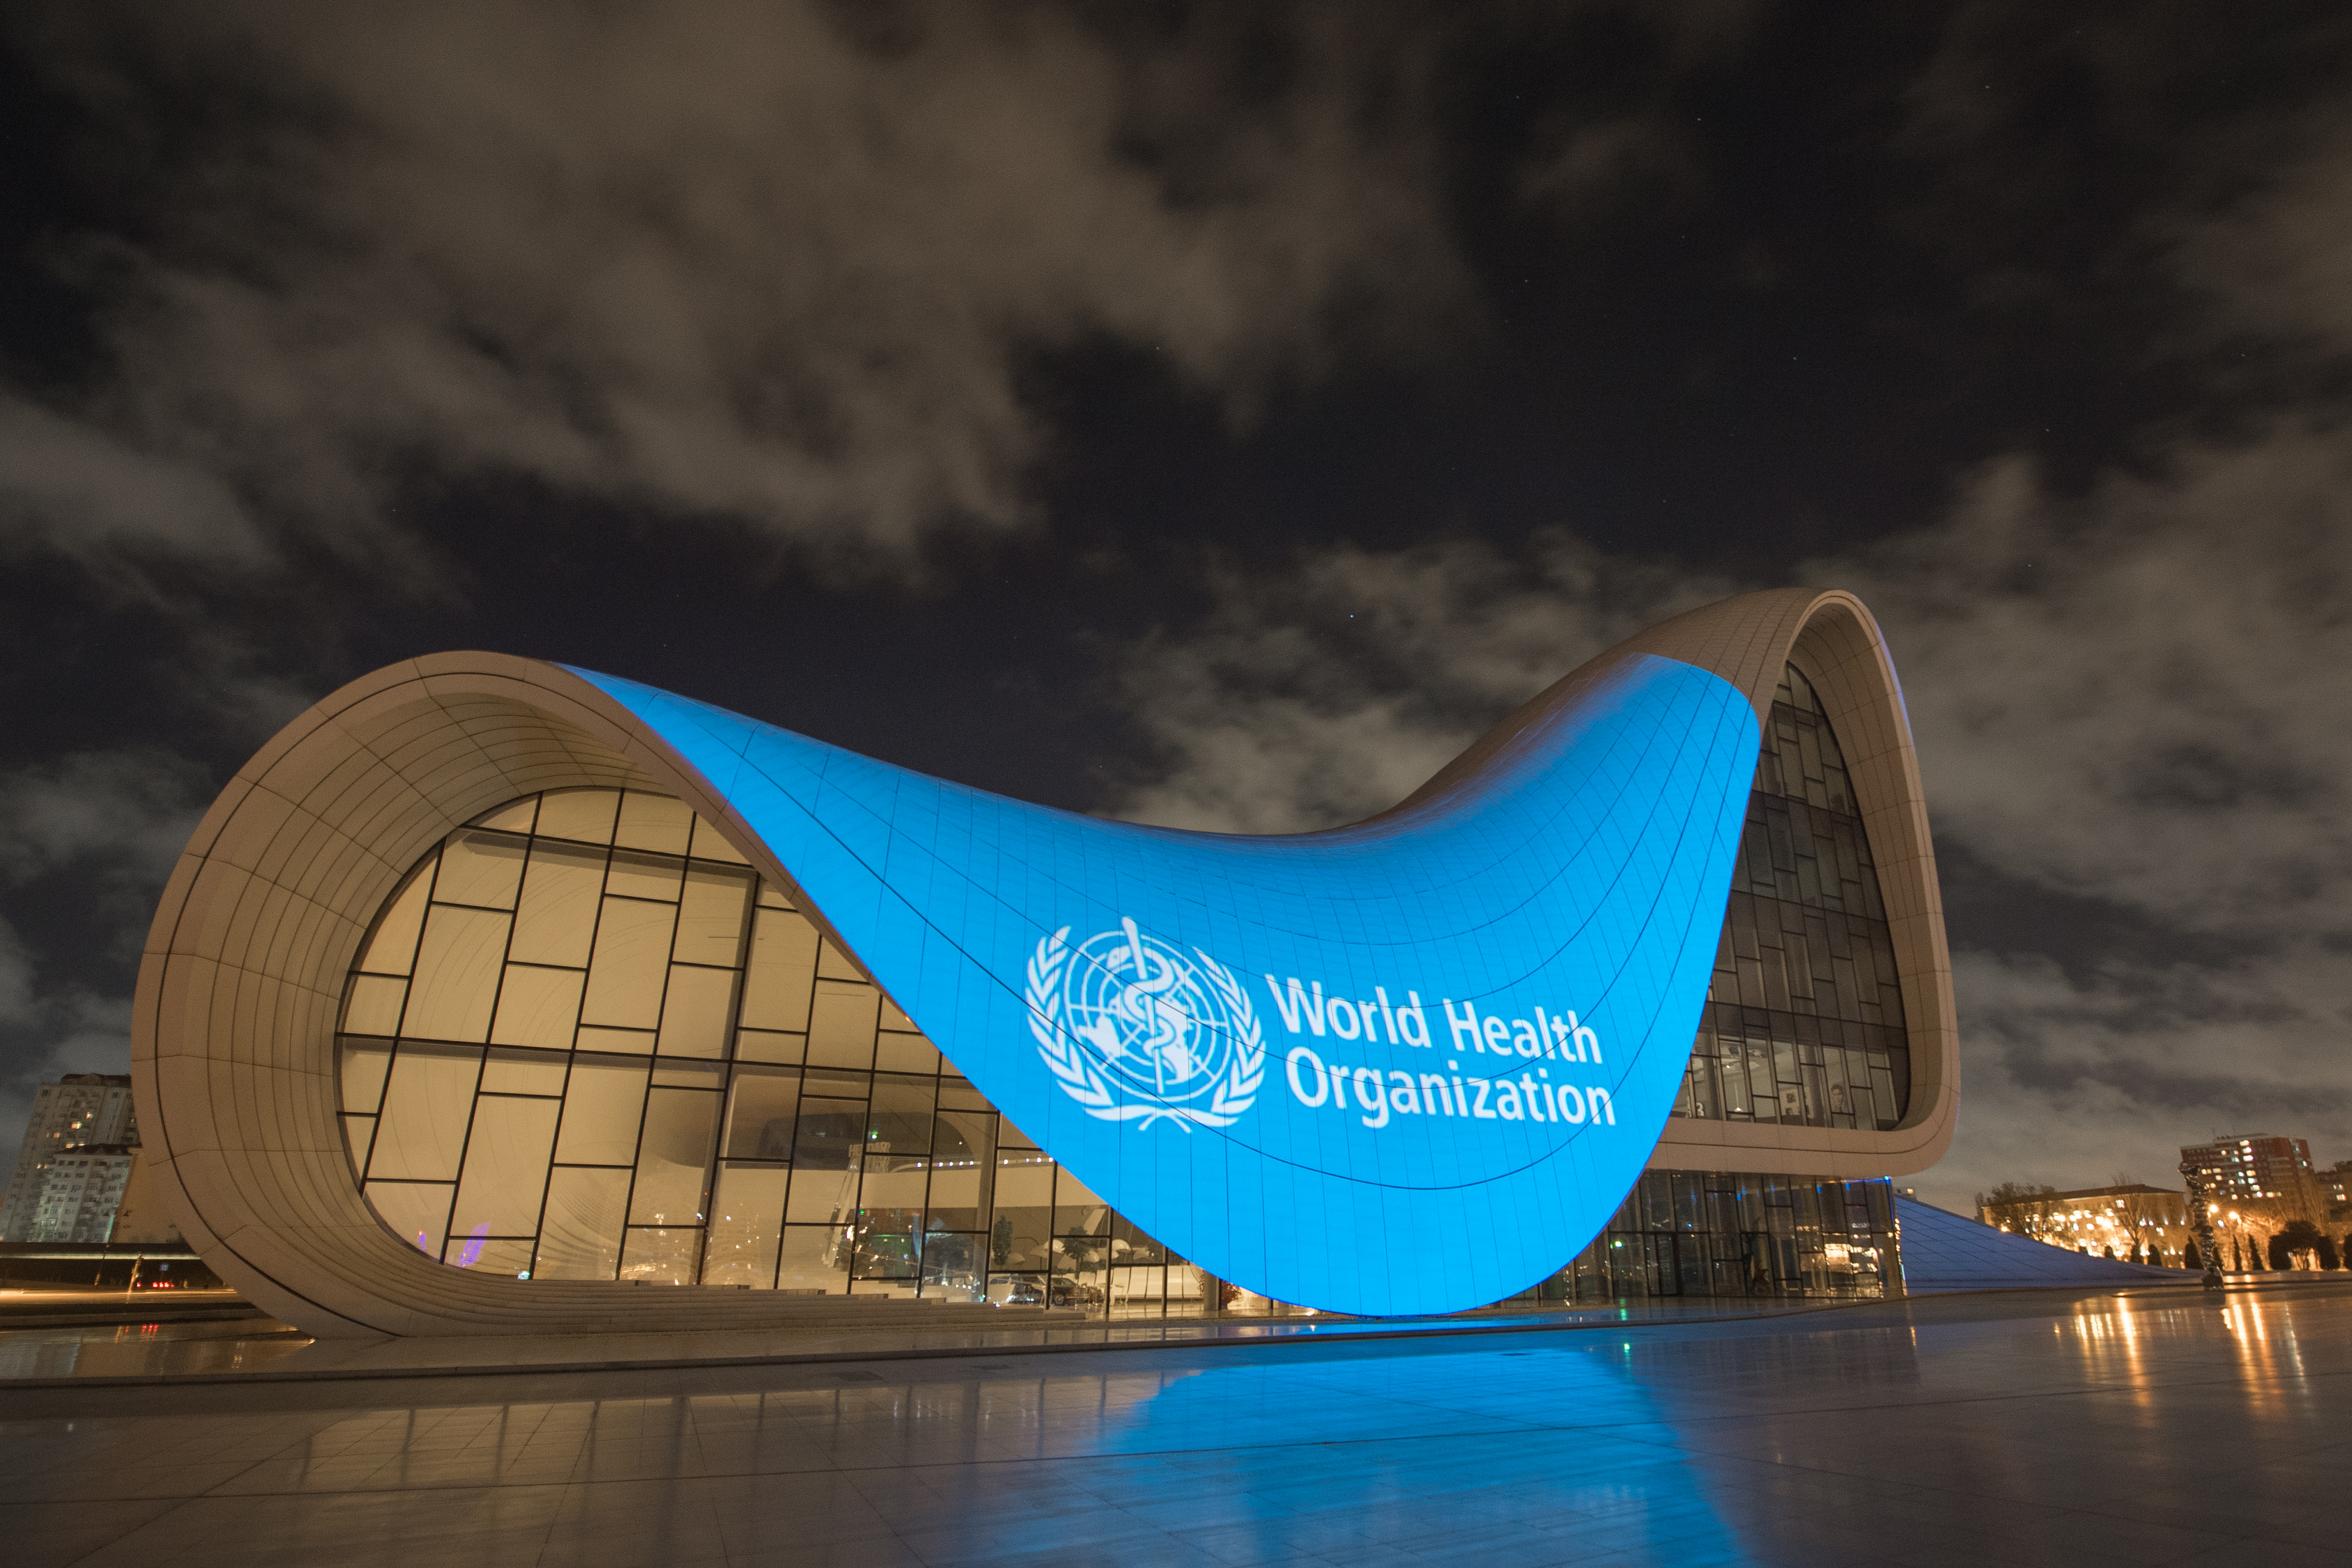 Azerbaijan projects WHO flag on iconic building as sign of solidarity and support